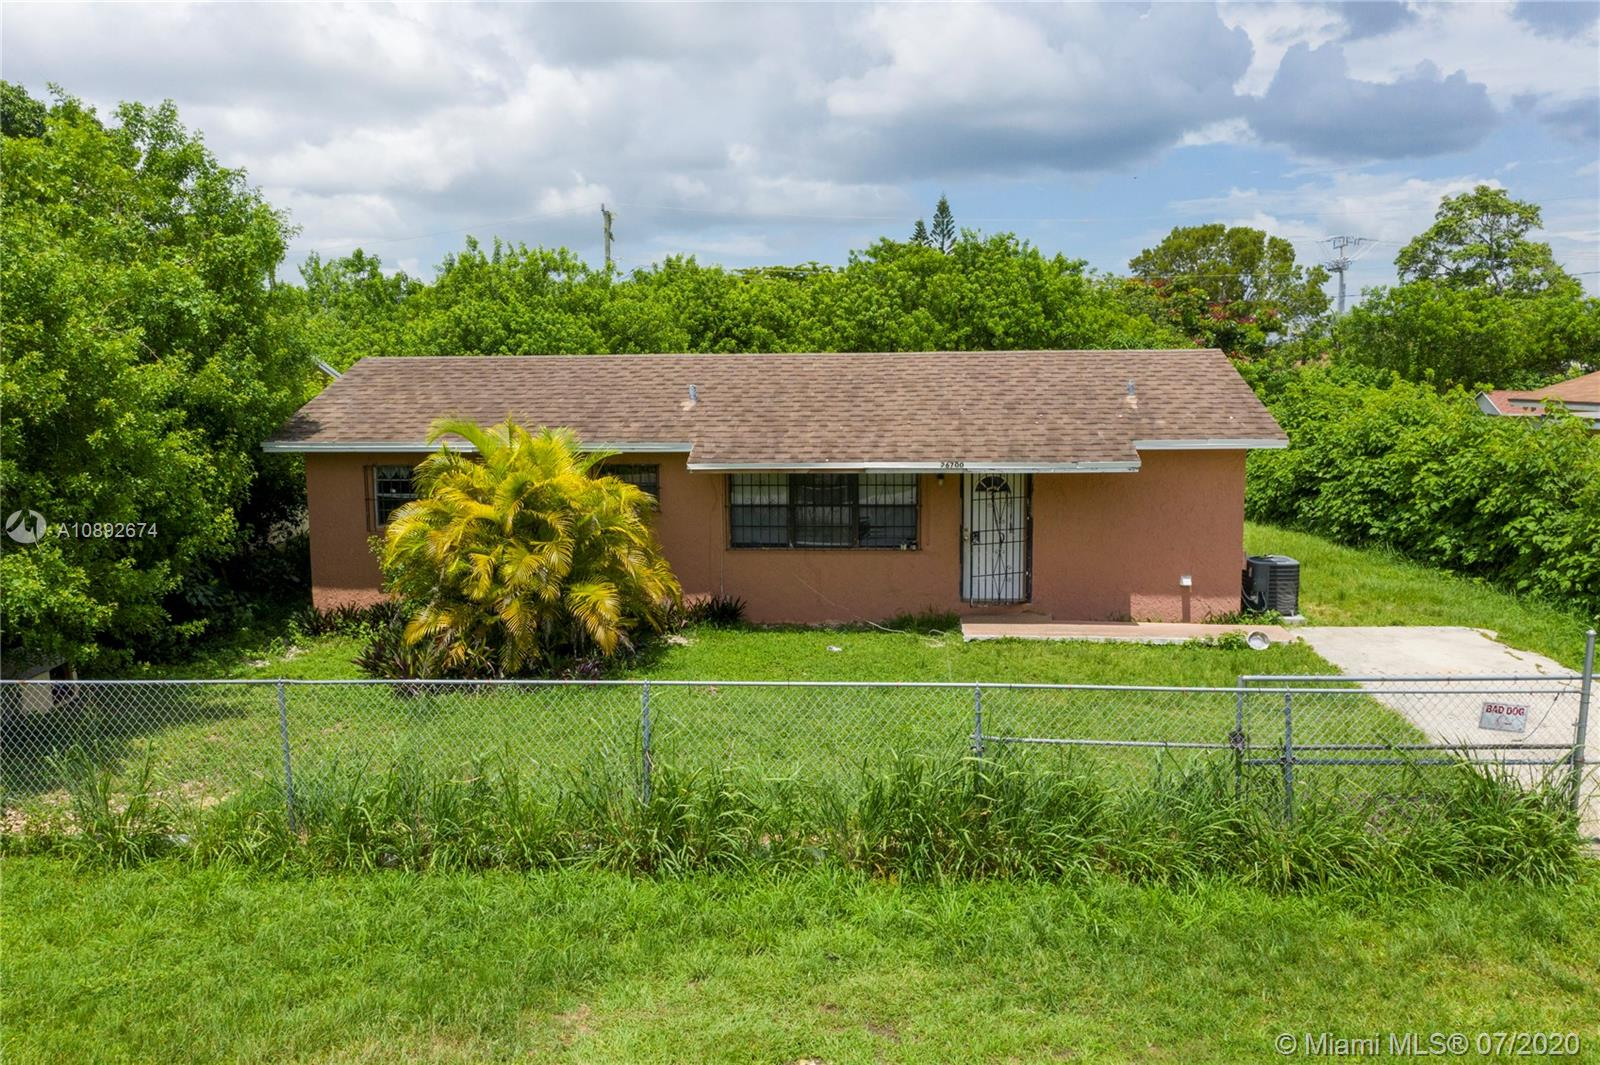 26700 SW 133rd Ct Property Photo - Homestead, FL real estate listing